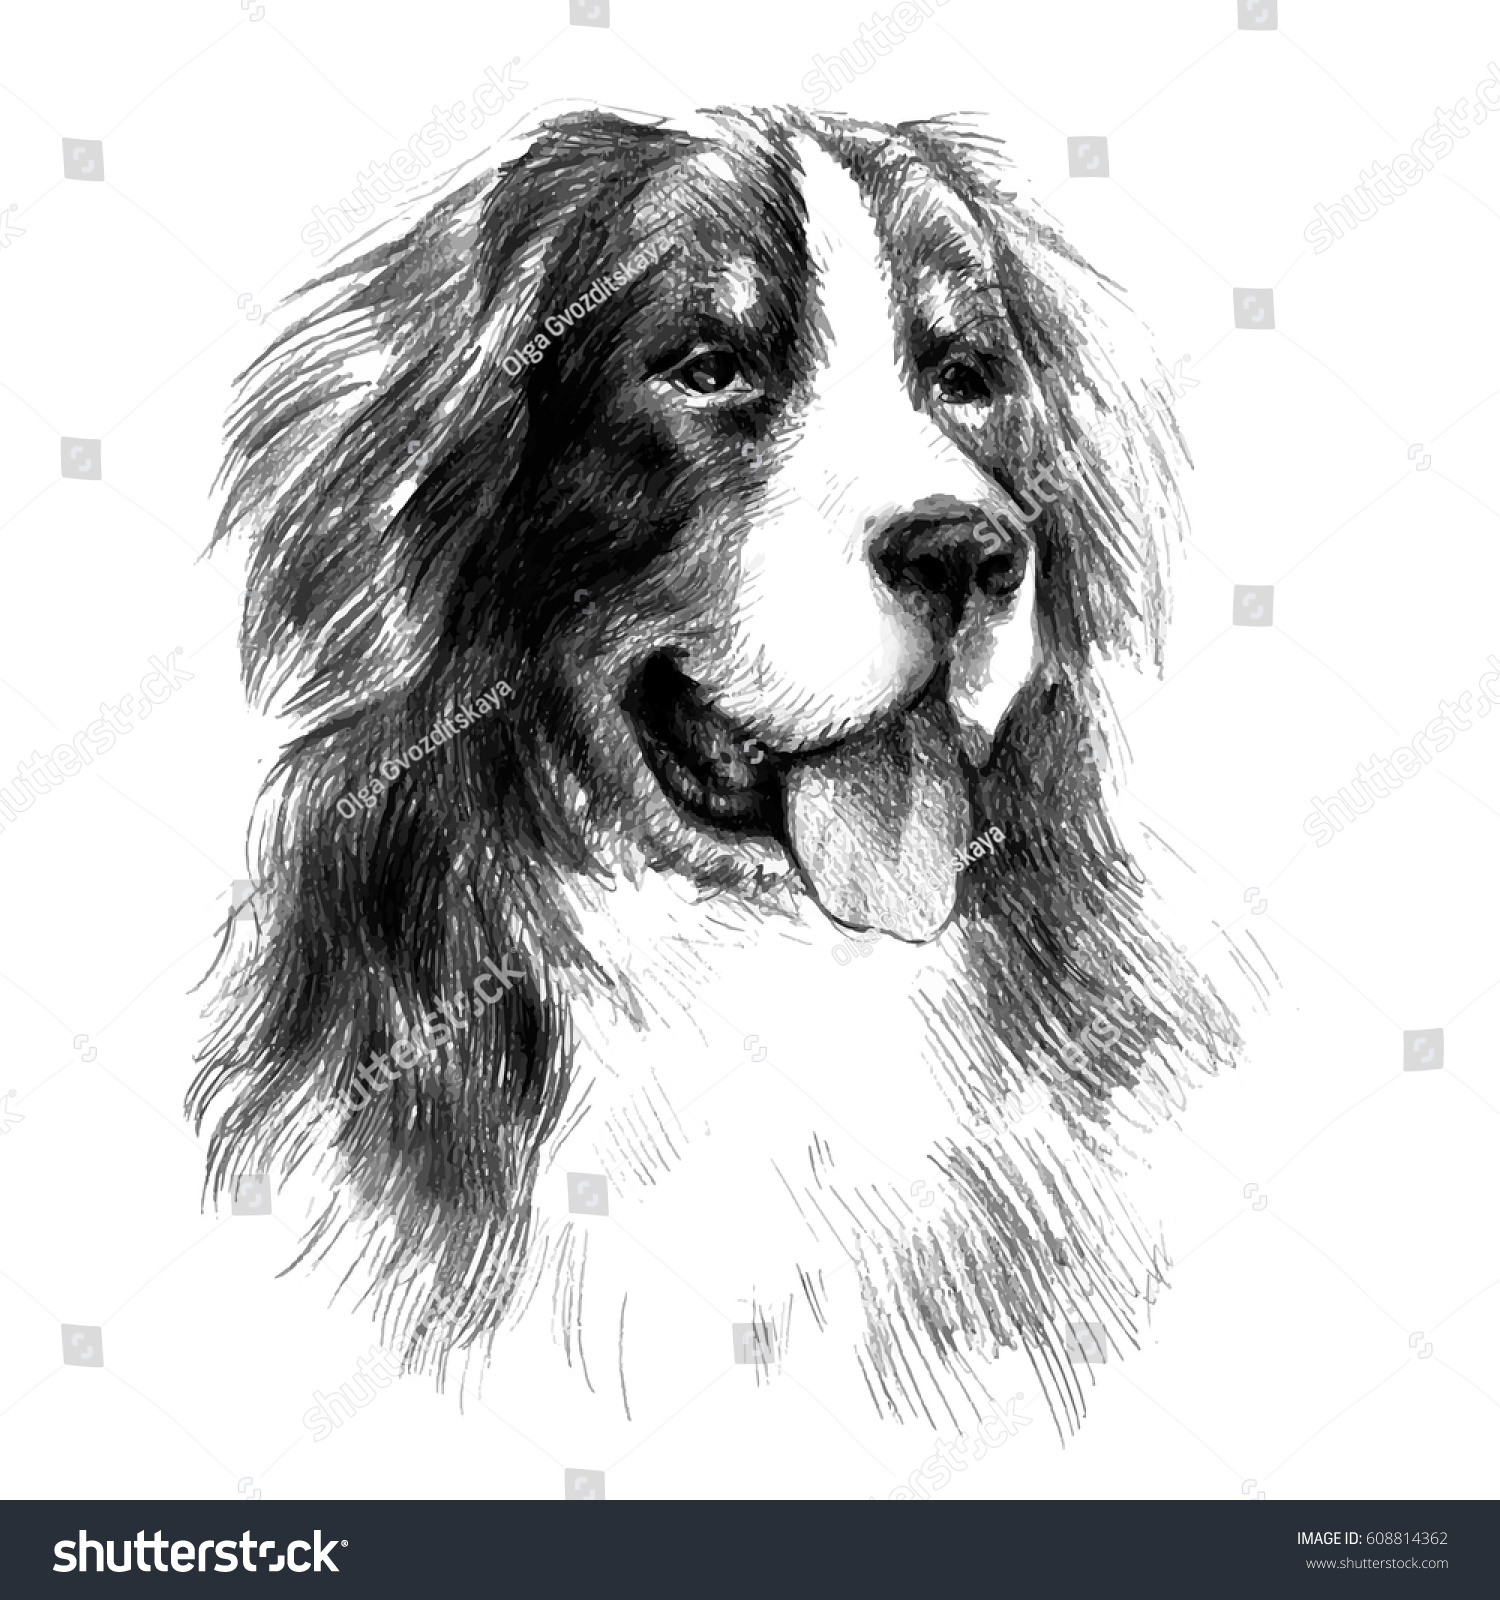 Bernese Mountain Dog Graphic Portrait Dog Stock Vector 608814362 - Shutterstock